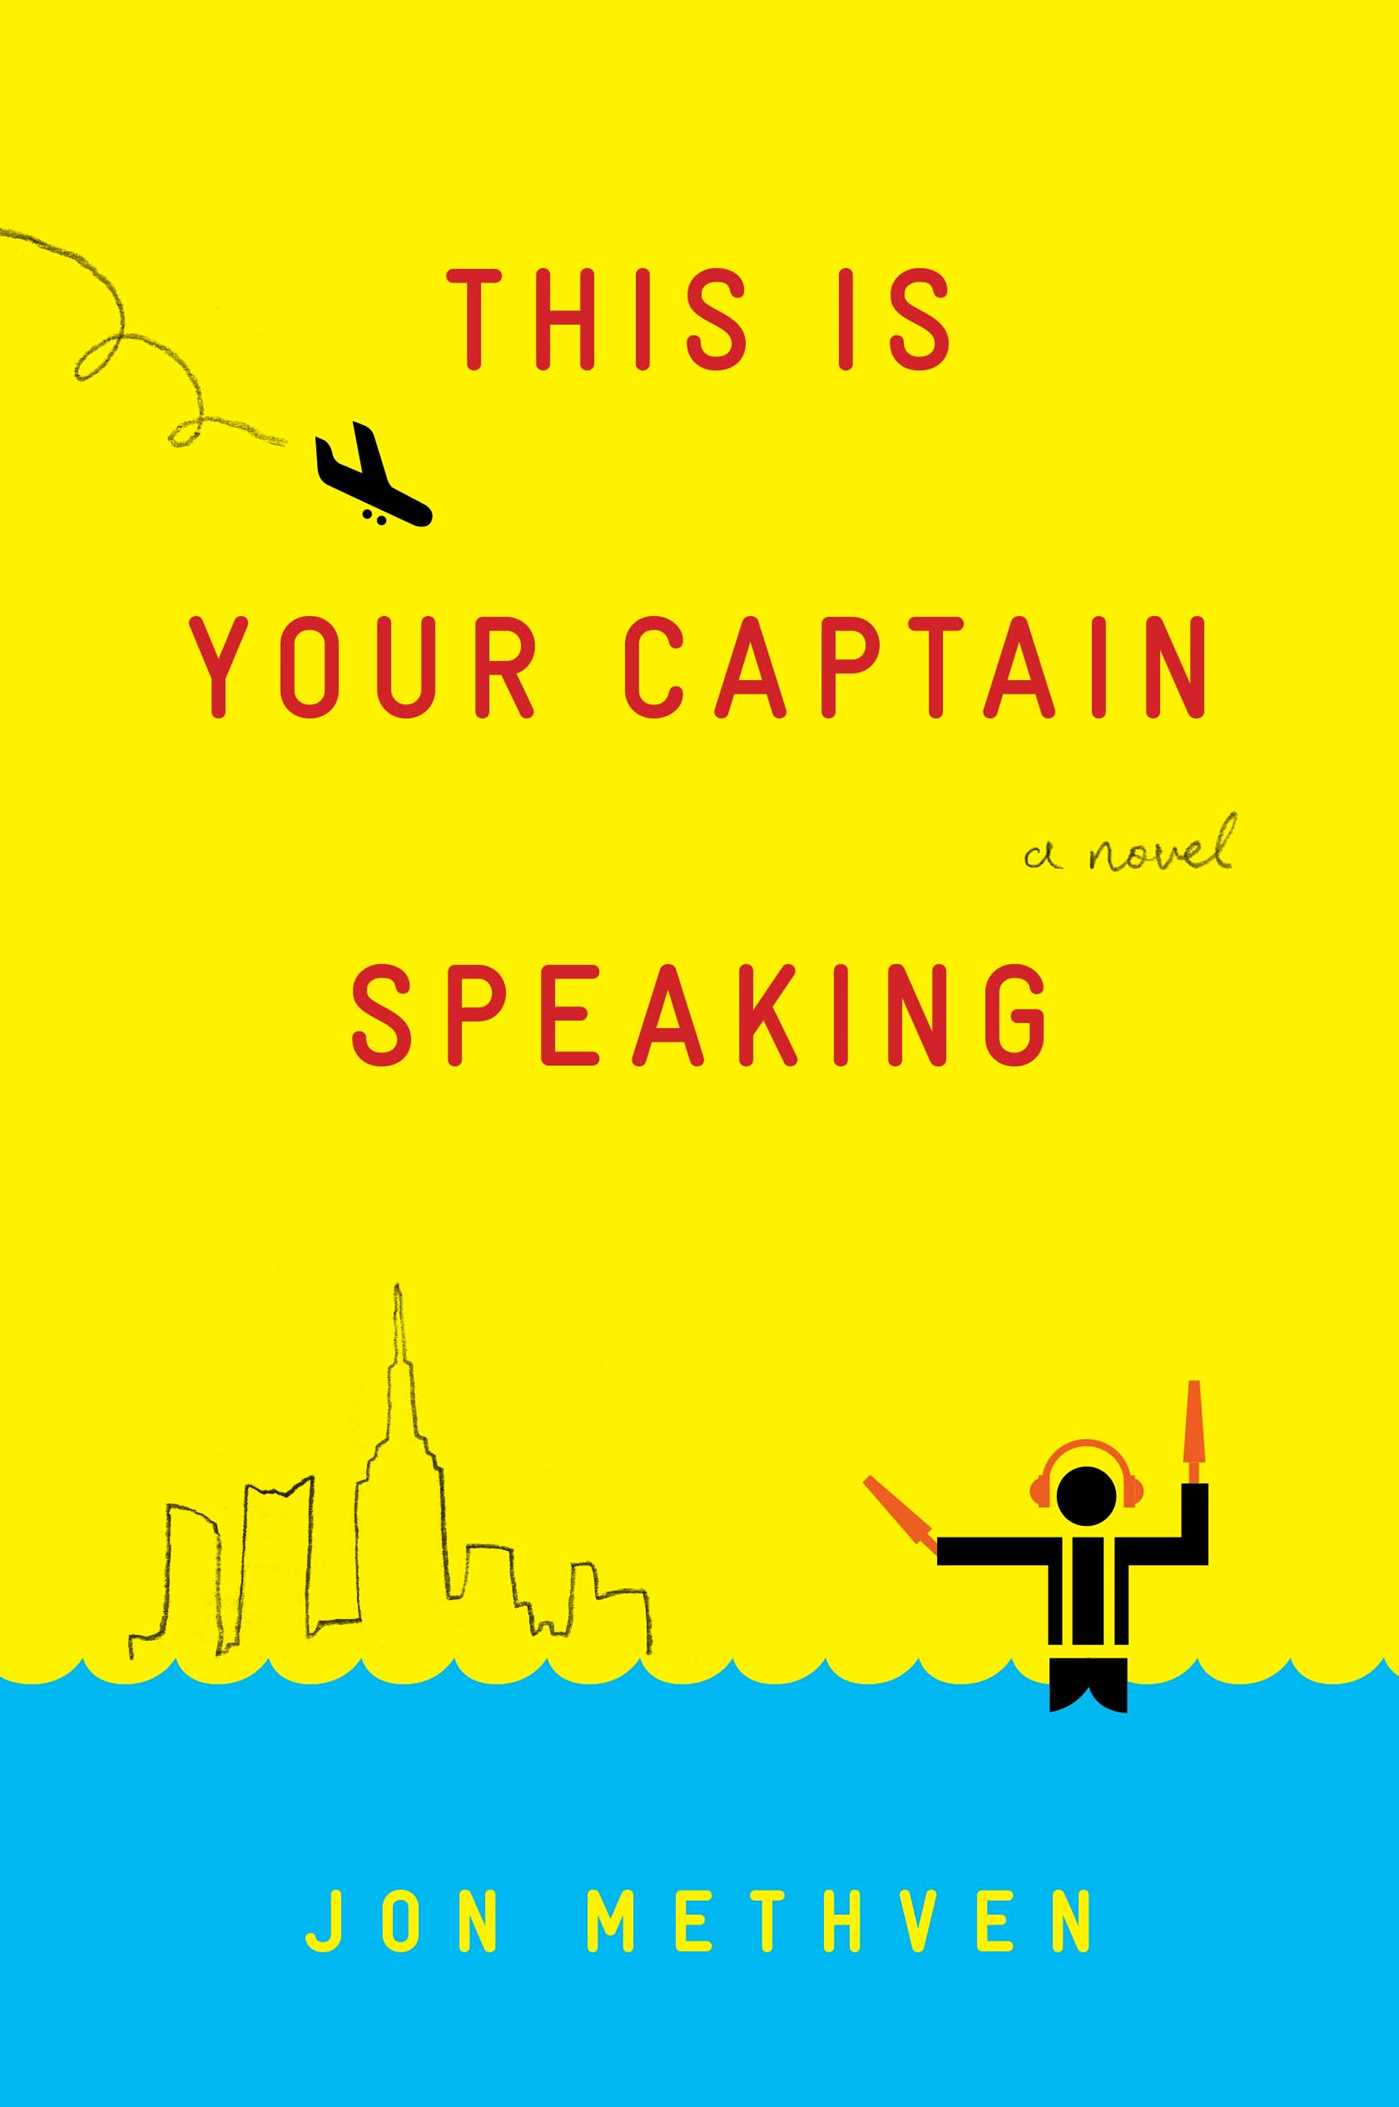 This-is-your-captain-speaking-9781451642179_hr